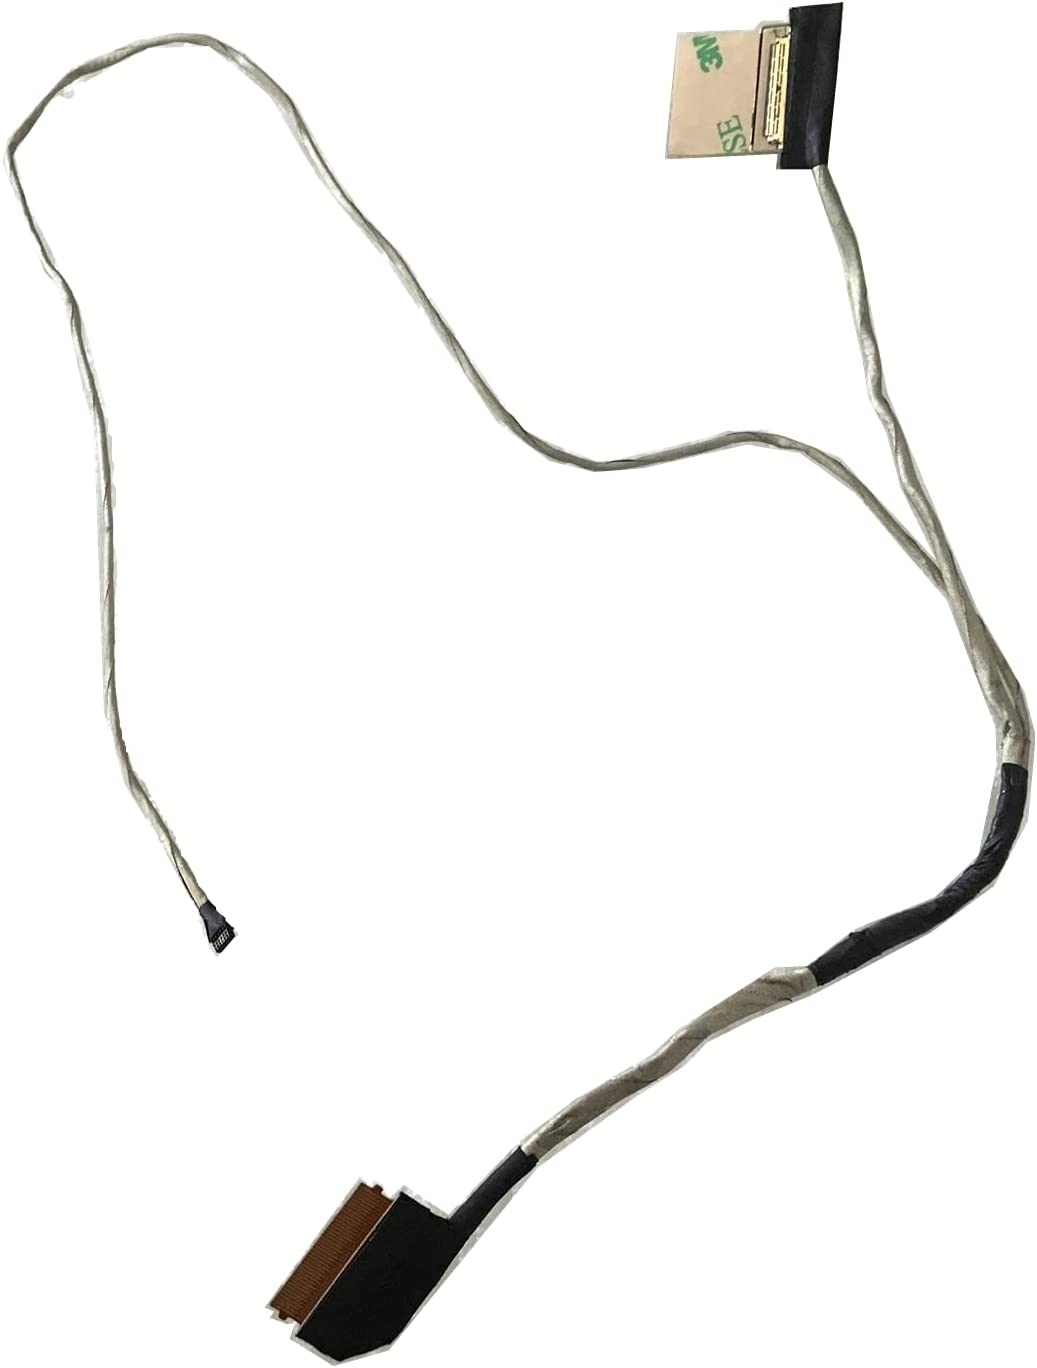 SOUTHERNINTL New Replacement for Dell 15 5566 Latitude 3180 3189 P51F LCD Cable 1HKRX 01HKRX DC02002S600